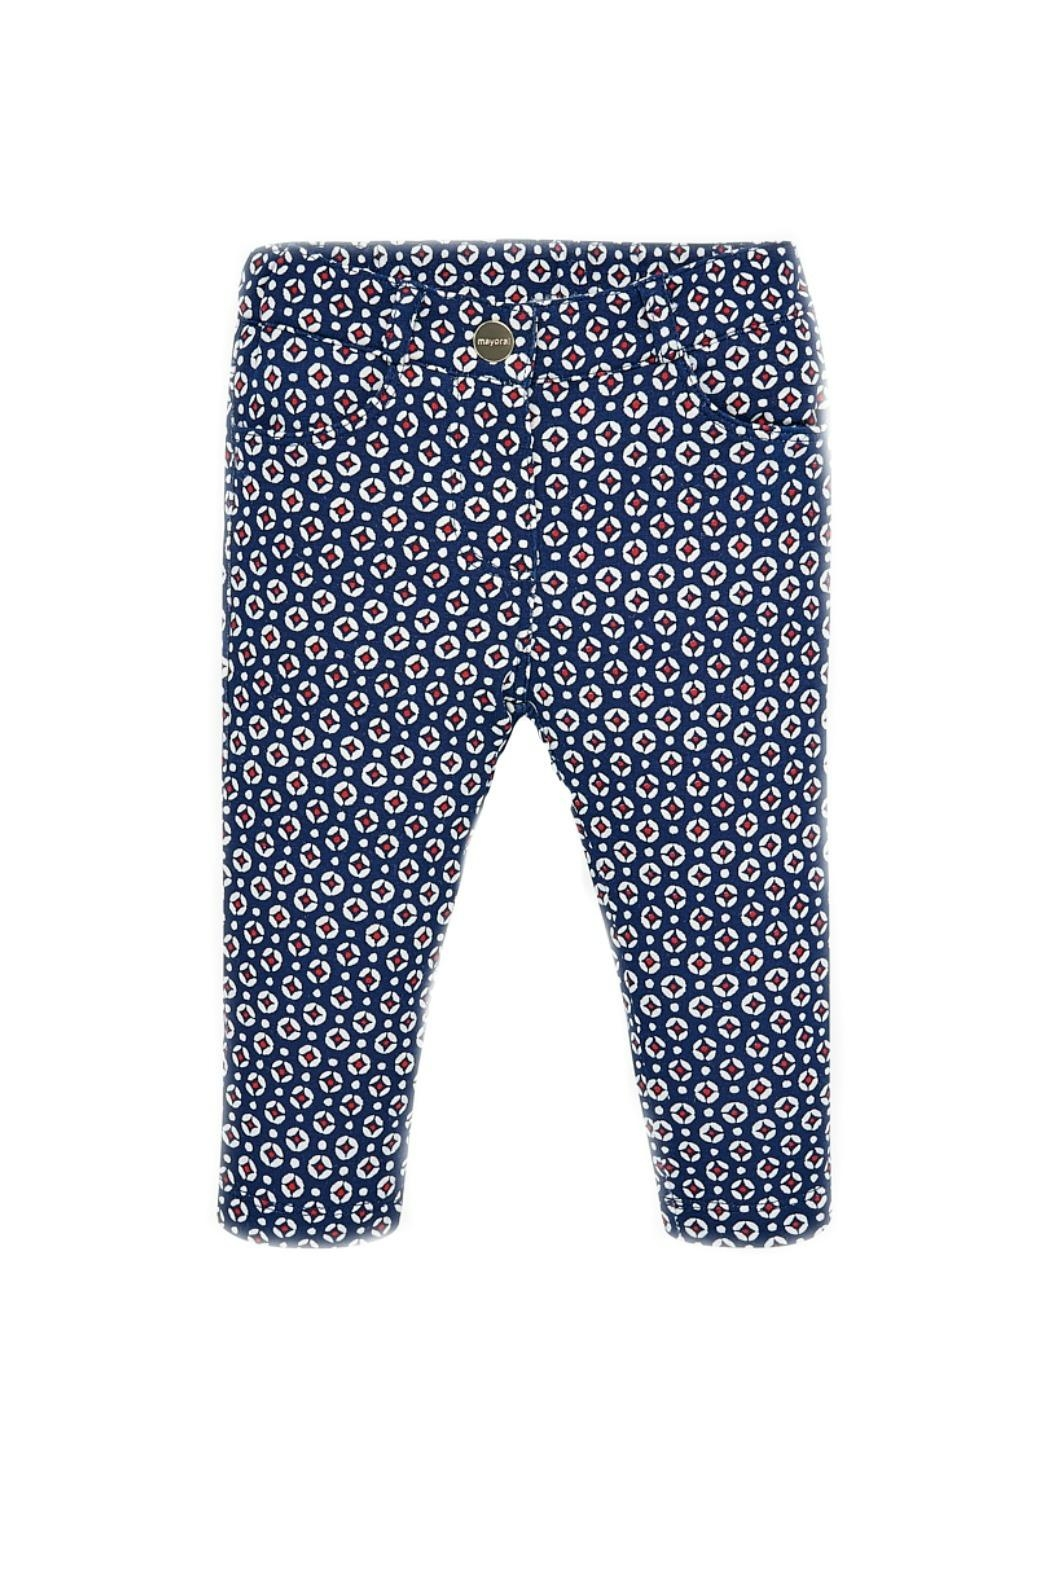 Mayoral Geo-Dot-Pattern Girls Trousers - Main Image